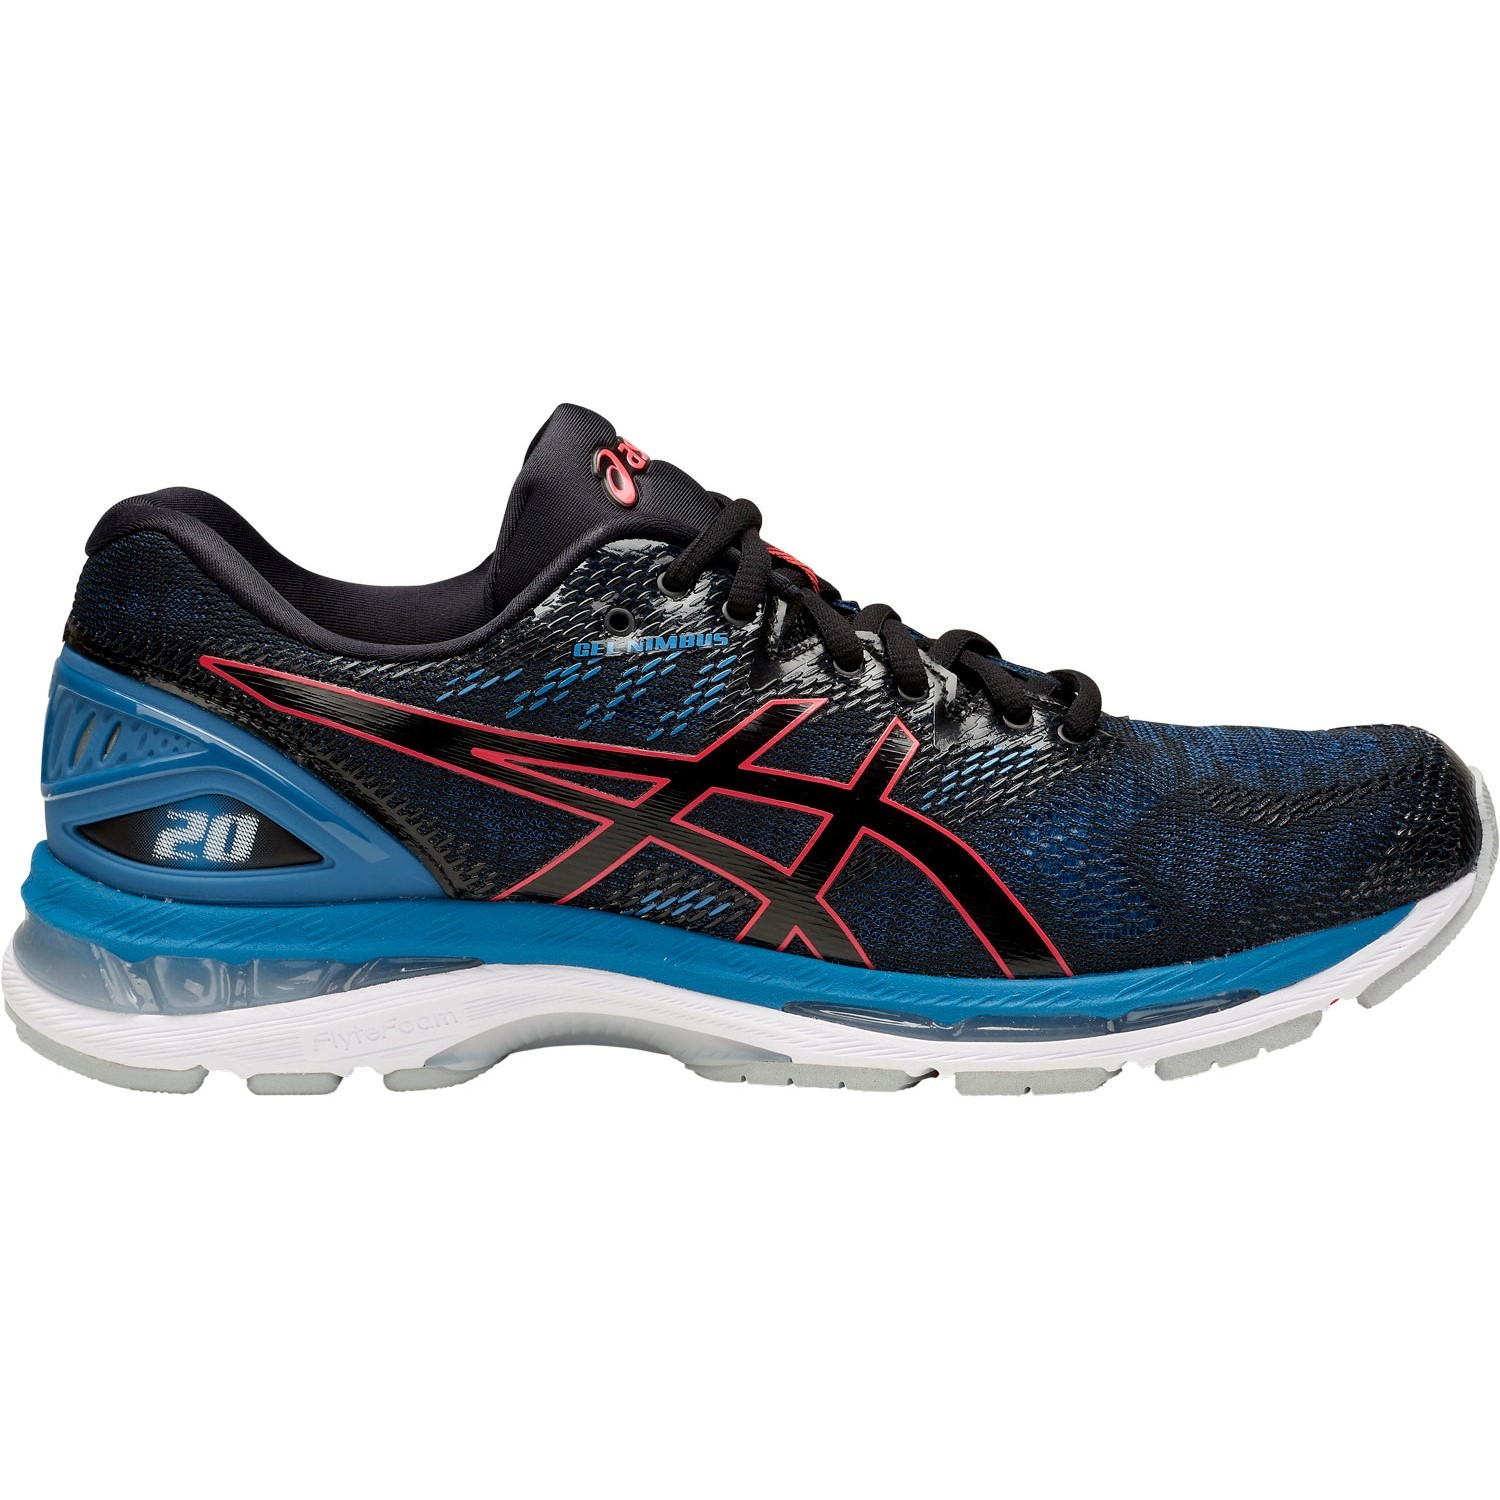 1fc0072a172 Asics Gel Nimbus 20 - Mens Running Shoes - Azure Red